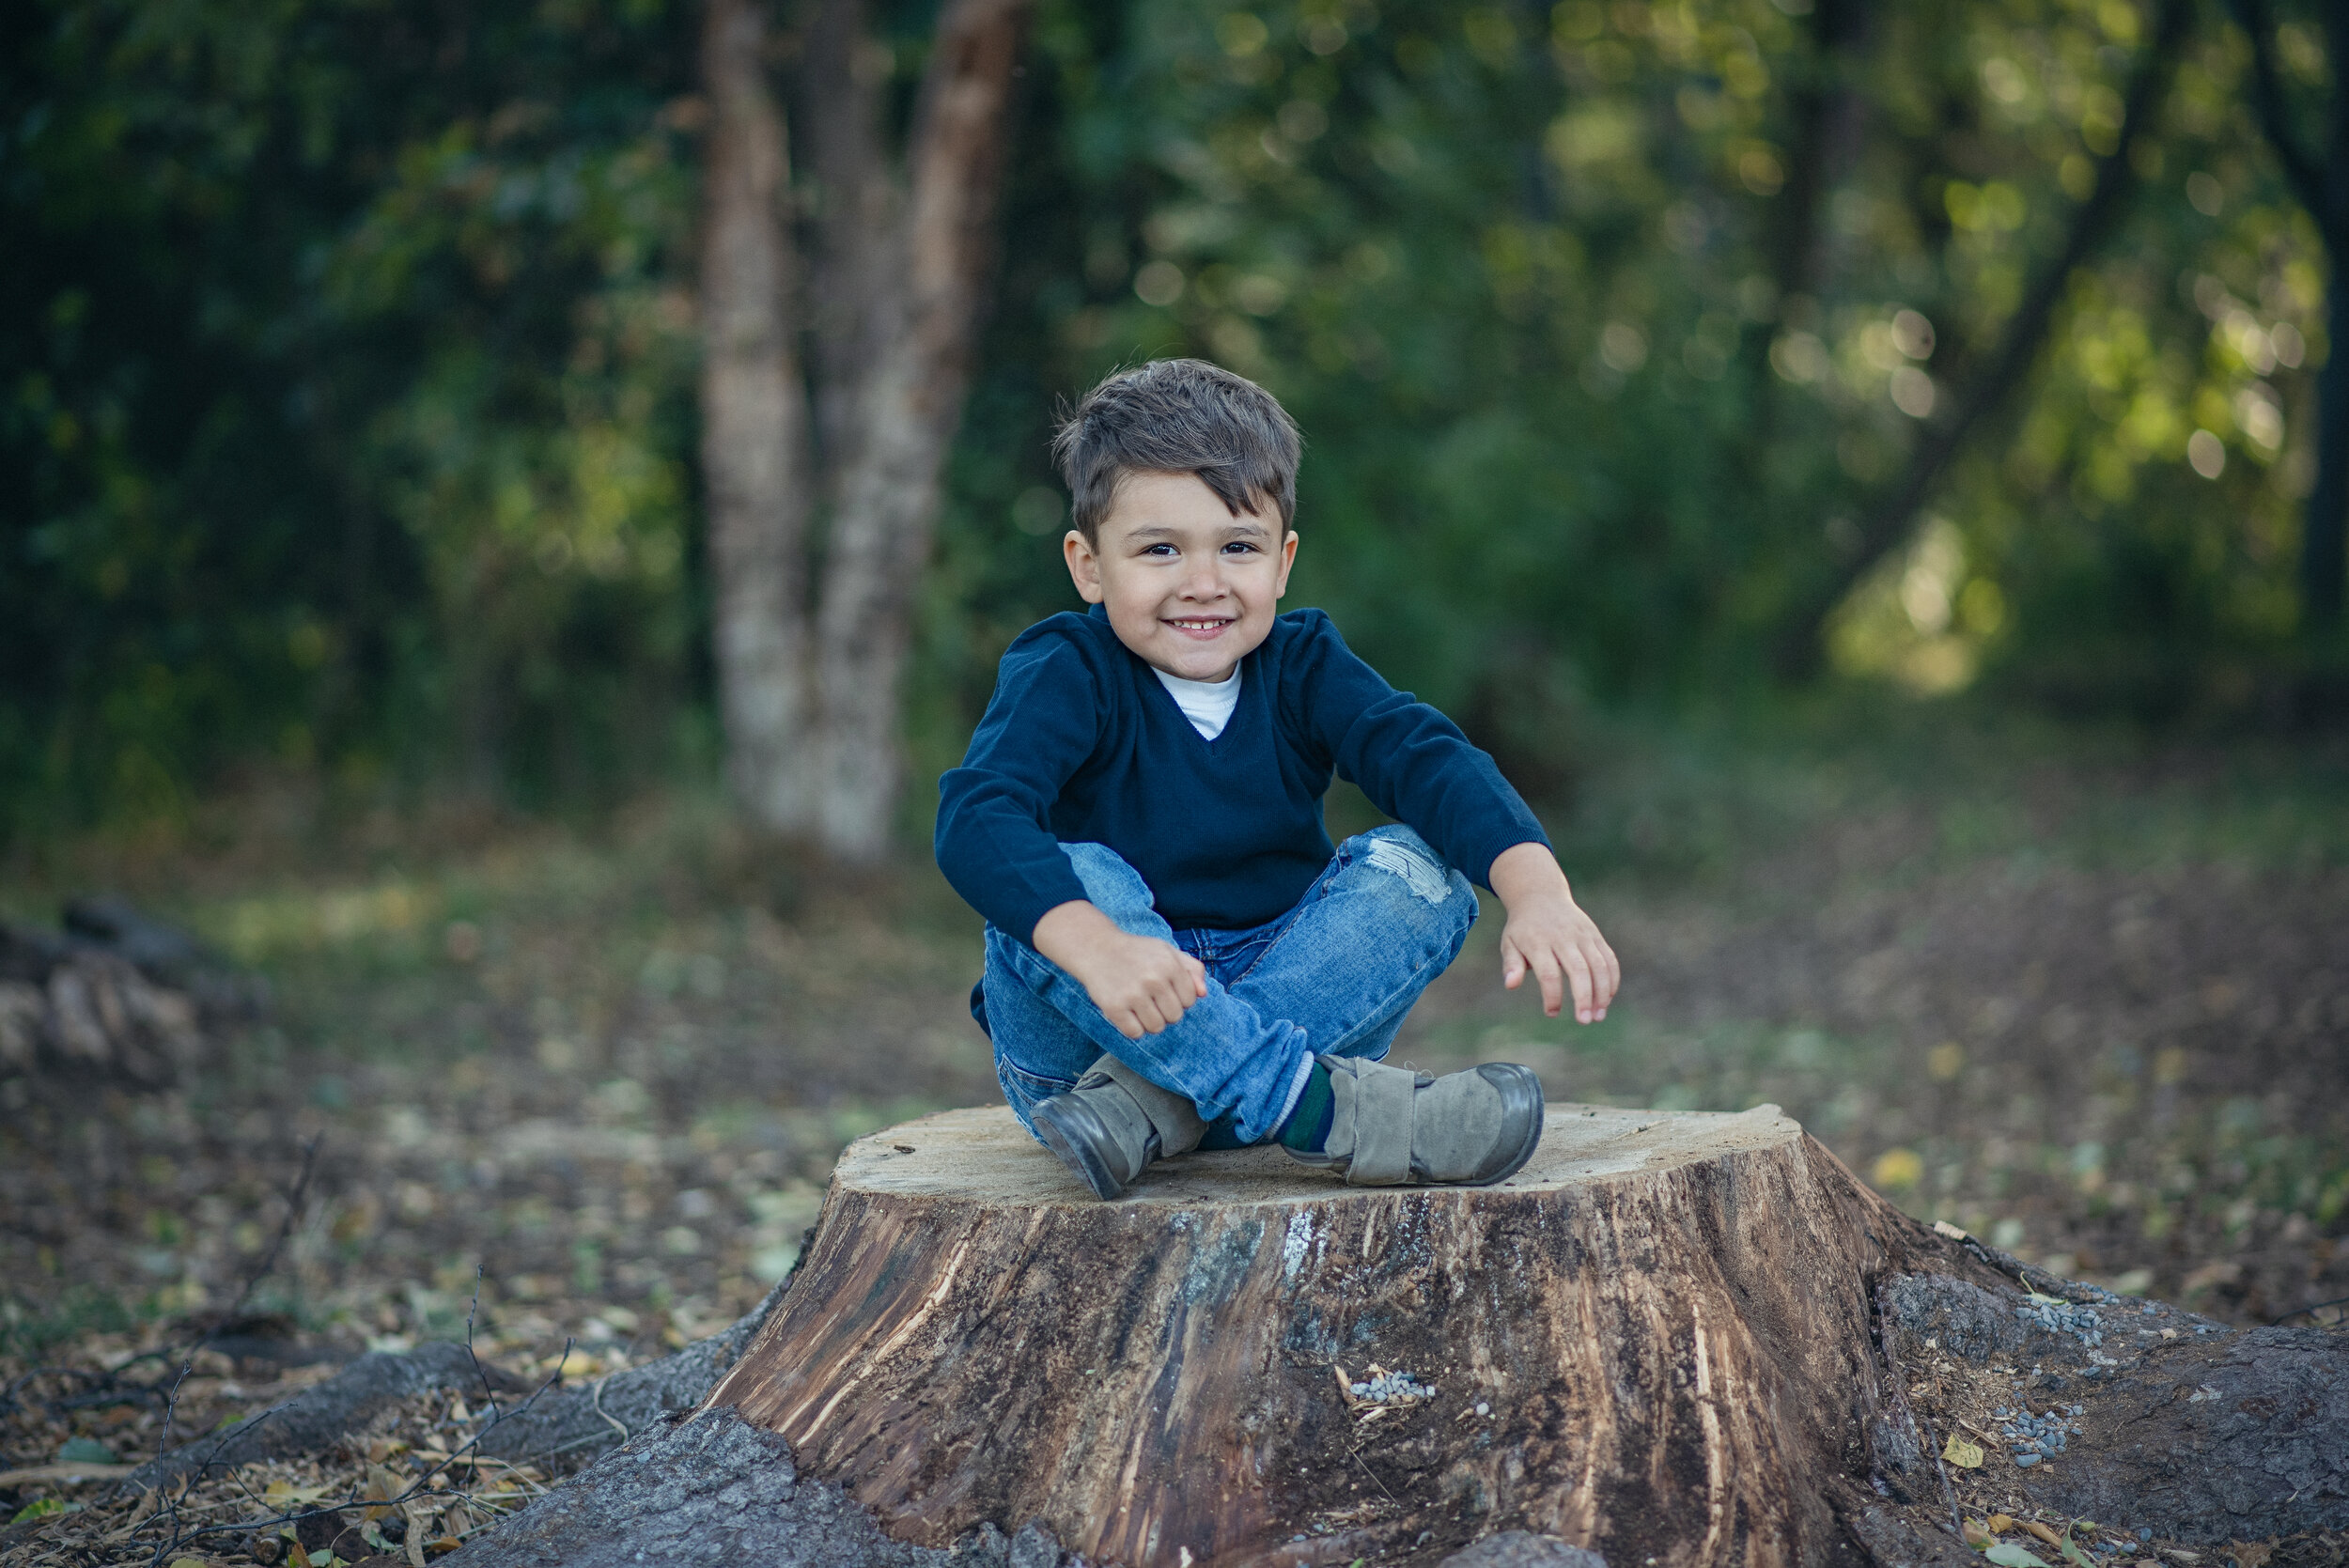 """""""Big Thanks to Oksana…"""" - Big thanks to Oksana with Rawsome photography for these amazing pictures. She did a wonderful job capturing our family and our lively little boy. I always thought it would be hard to do a photo shoot with Brayden at this age but Oksana made it feel effortless"""